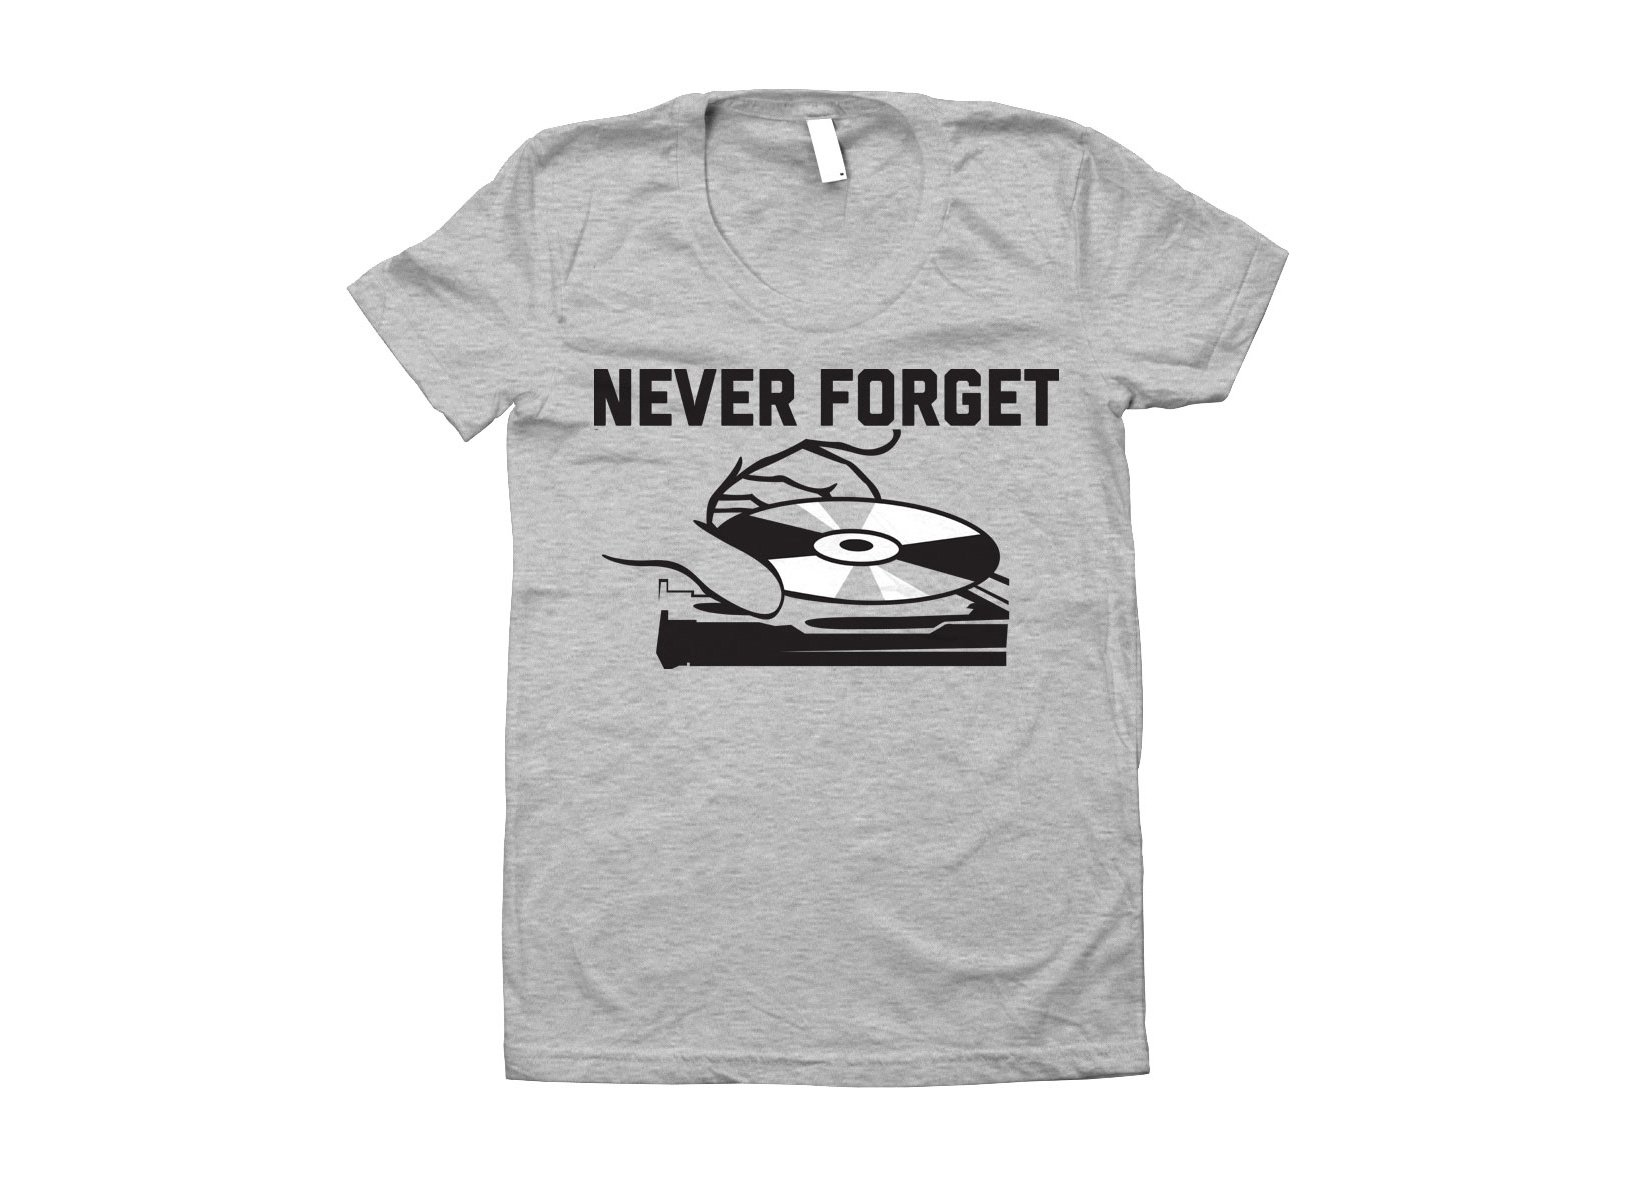 Never Forget on Juniors T-Shirt